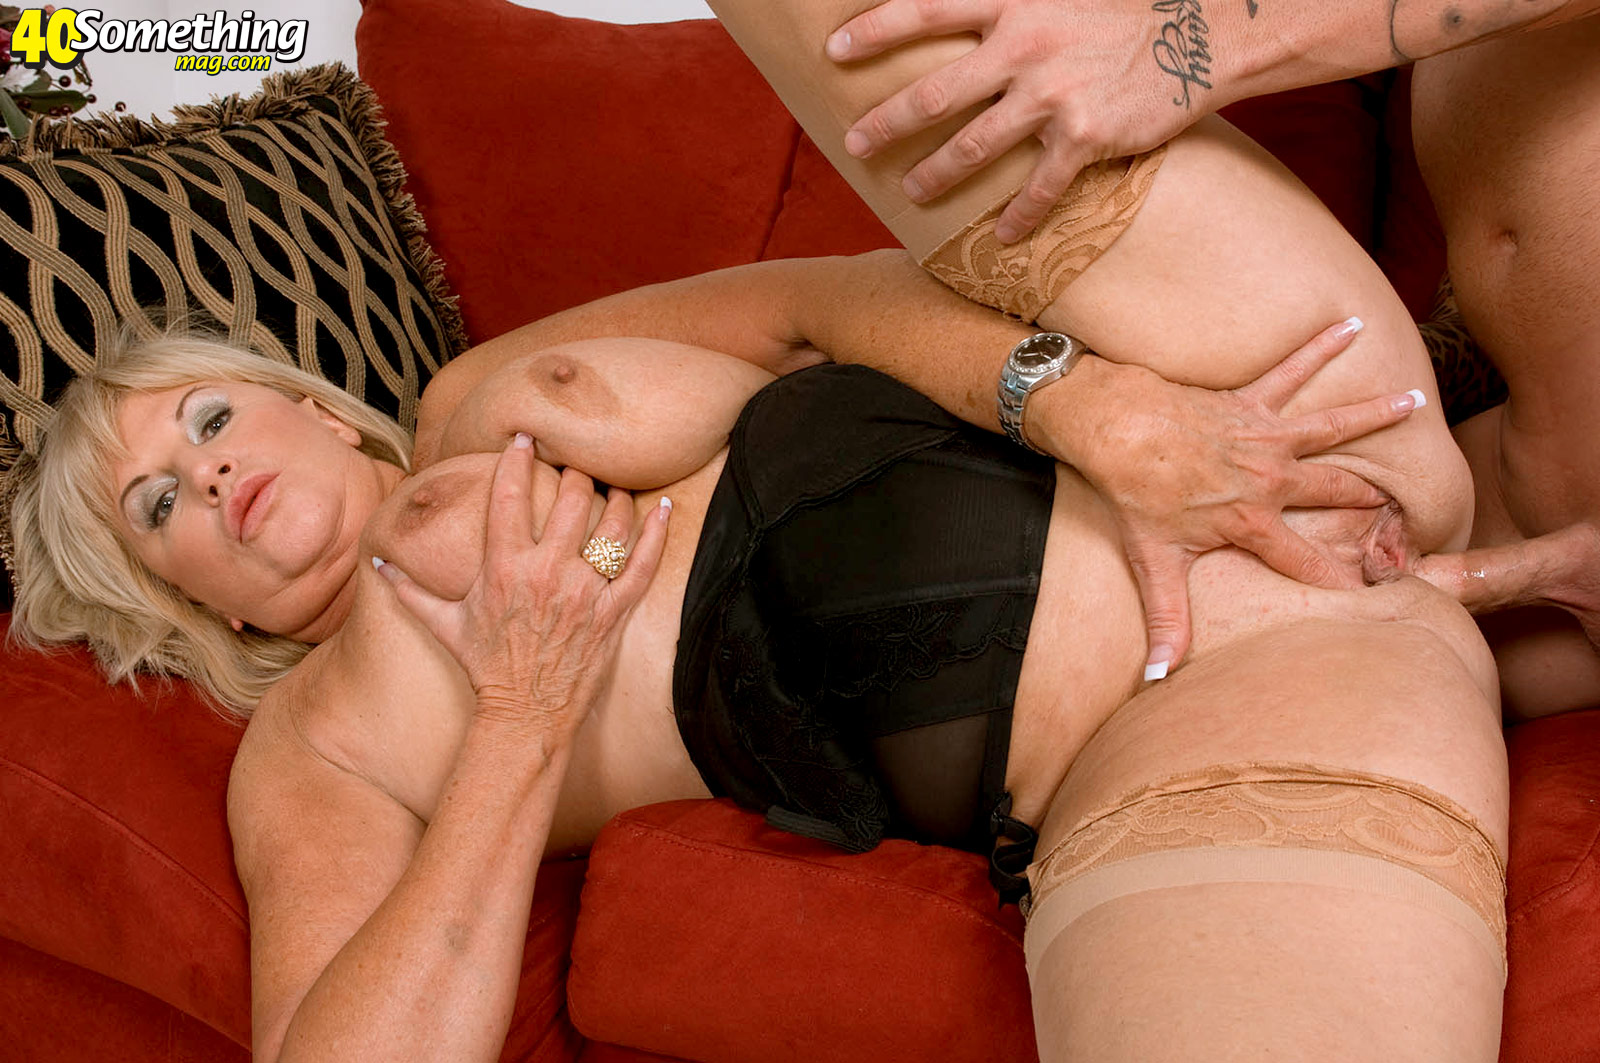 Sharing her first interracial experience clips